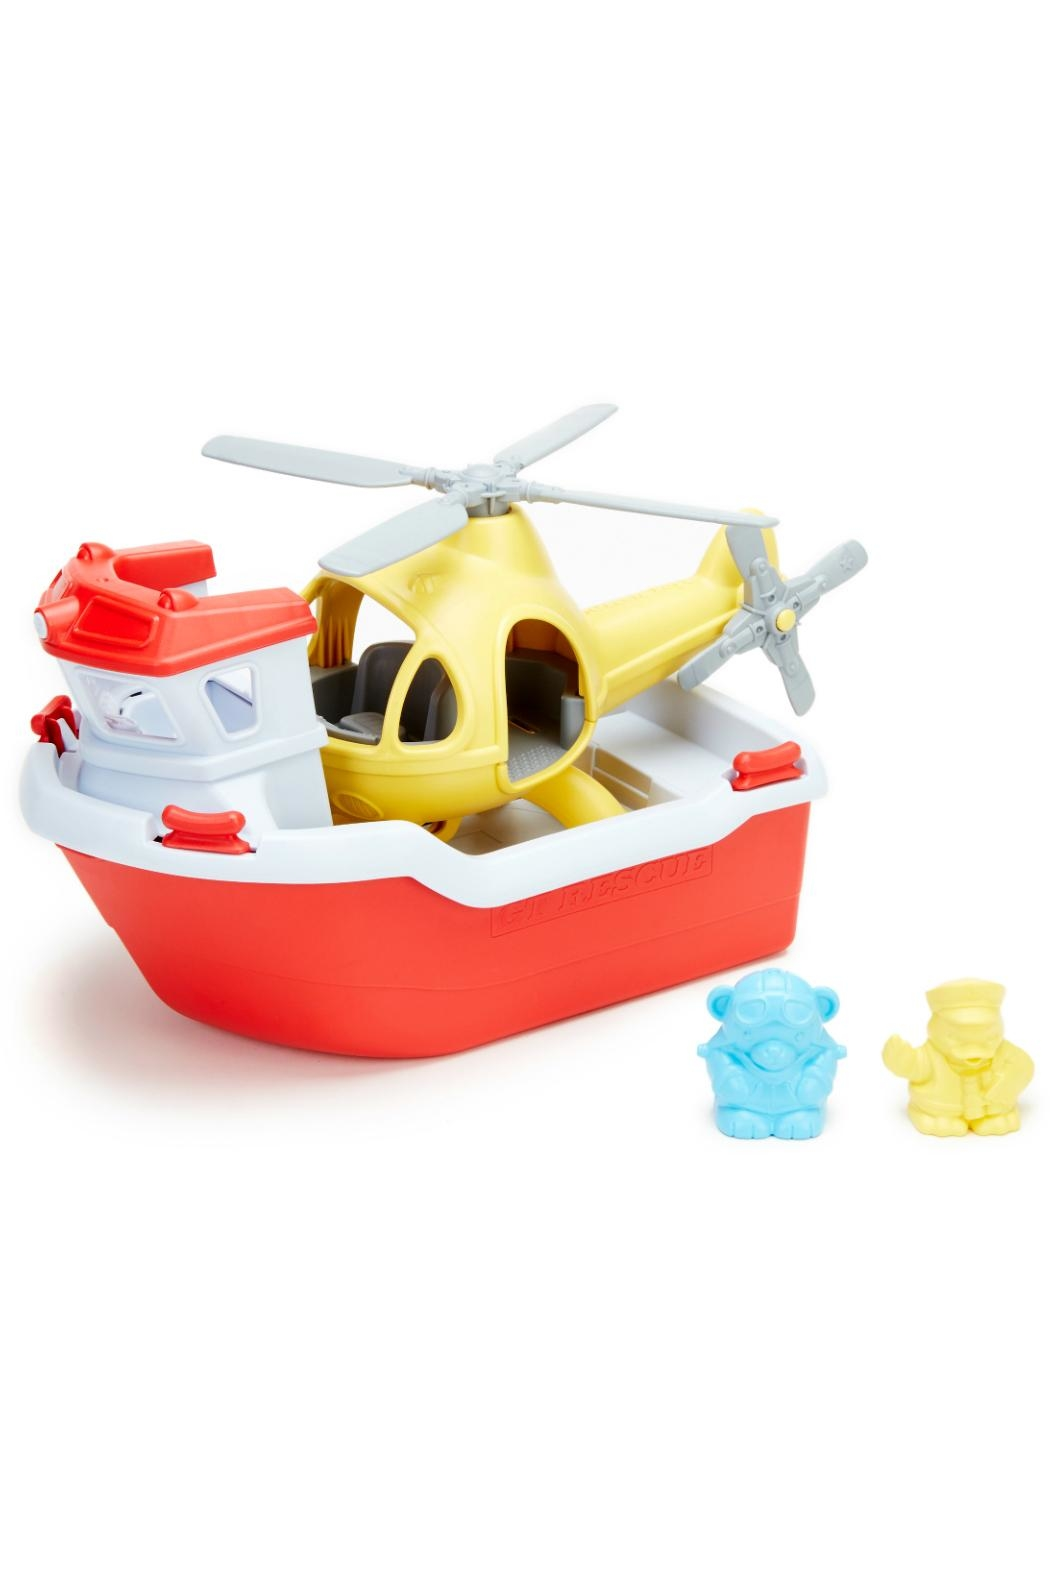 Green Toys Toy Boat & Helicopter - Main Image